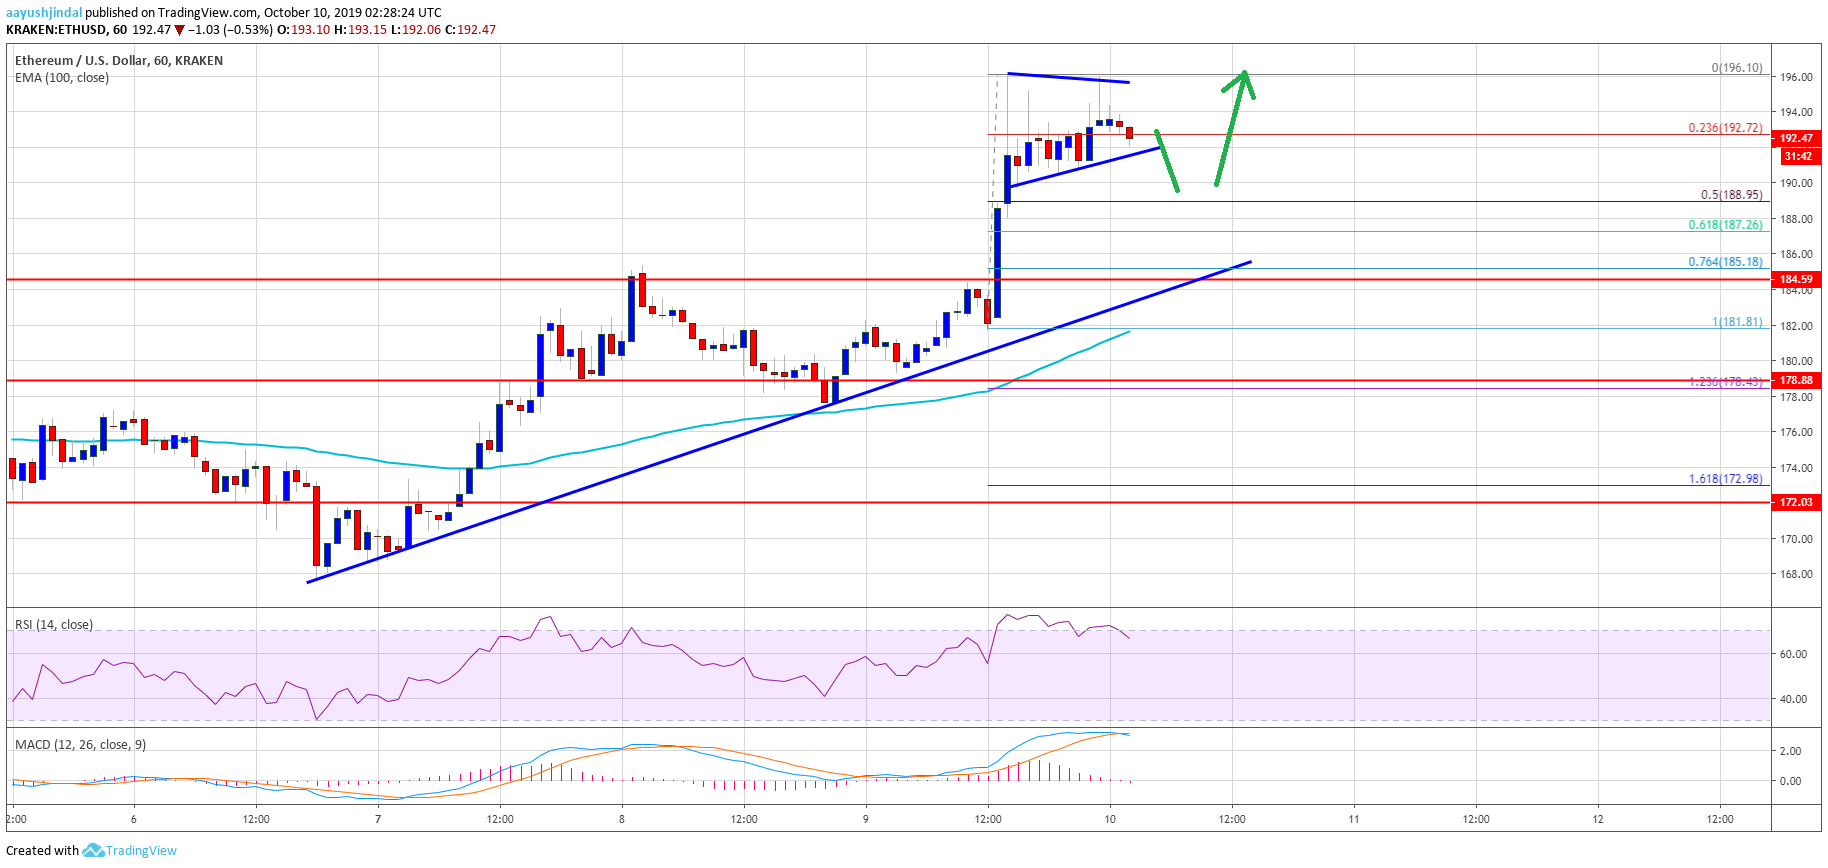 Ethereum 8 - Ethereum (ETH) Price Smashes Resistance, $200 Now In Sight